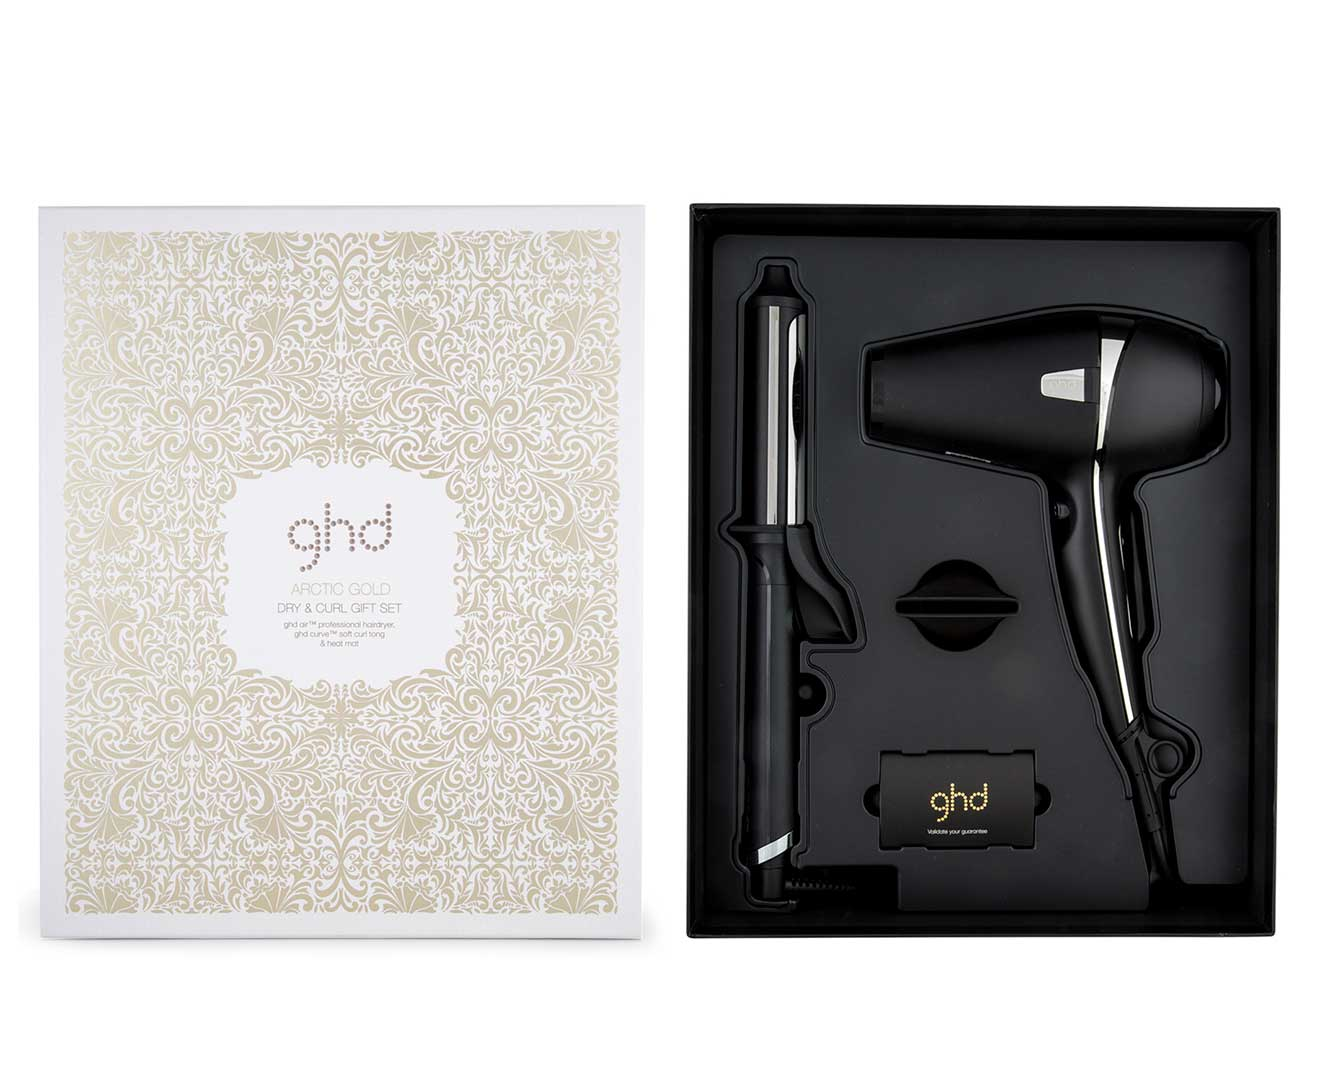 ghd Arctic Gold Deluxe Dry and Curl Tong Gift Set - Black  c406913214a